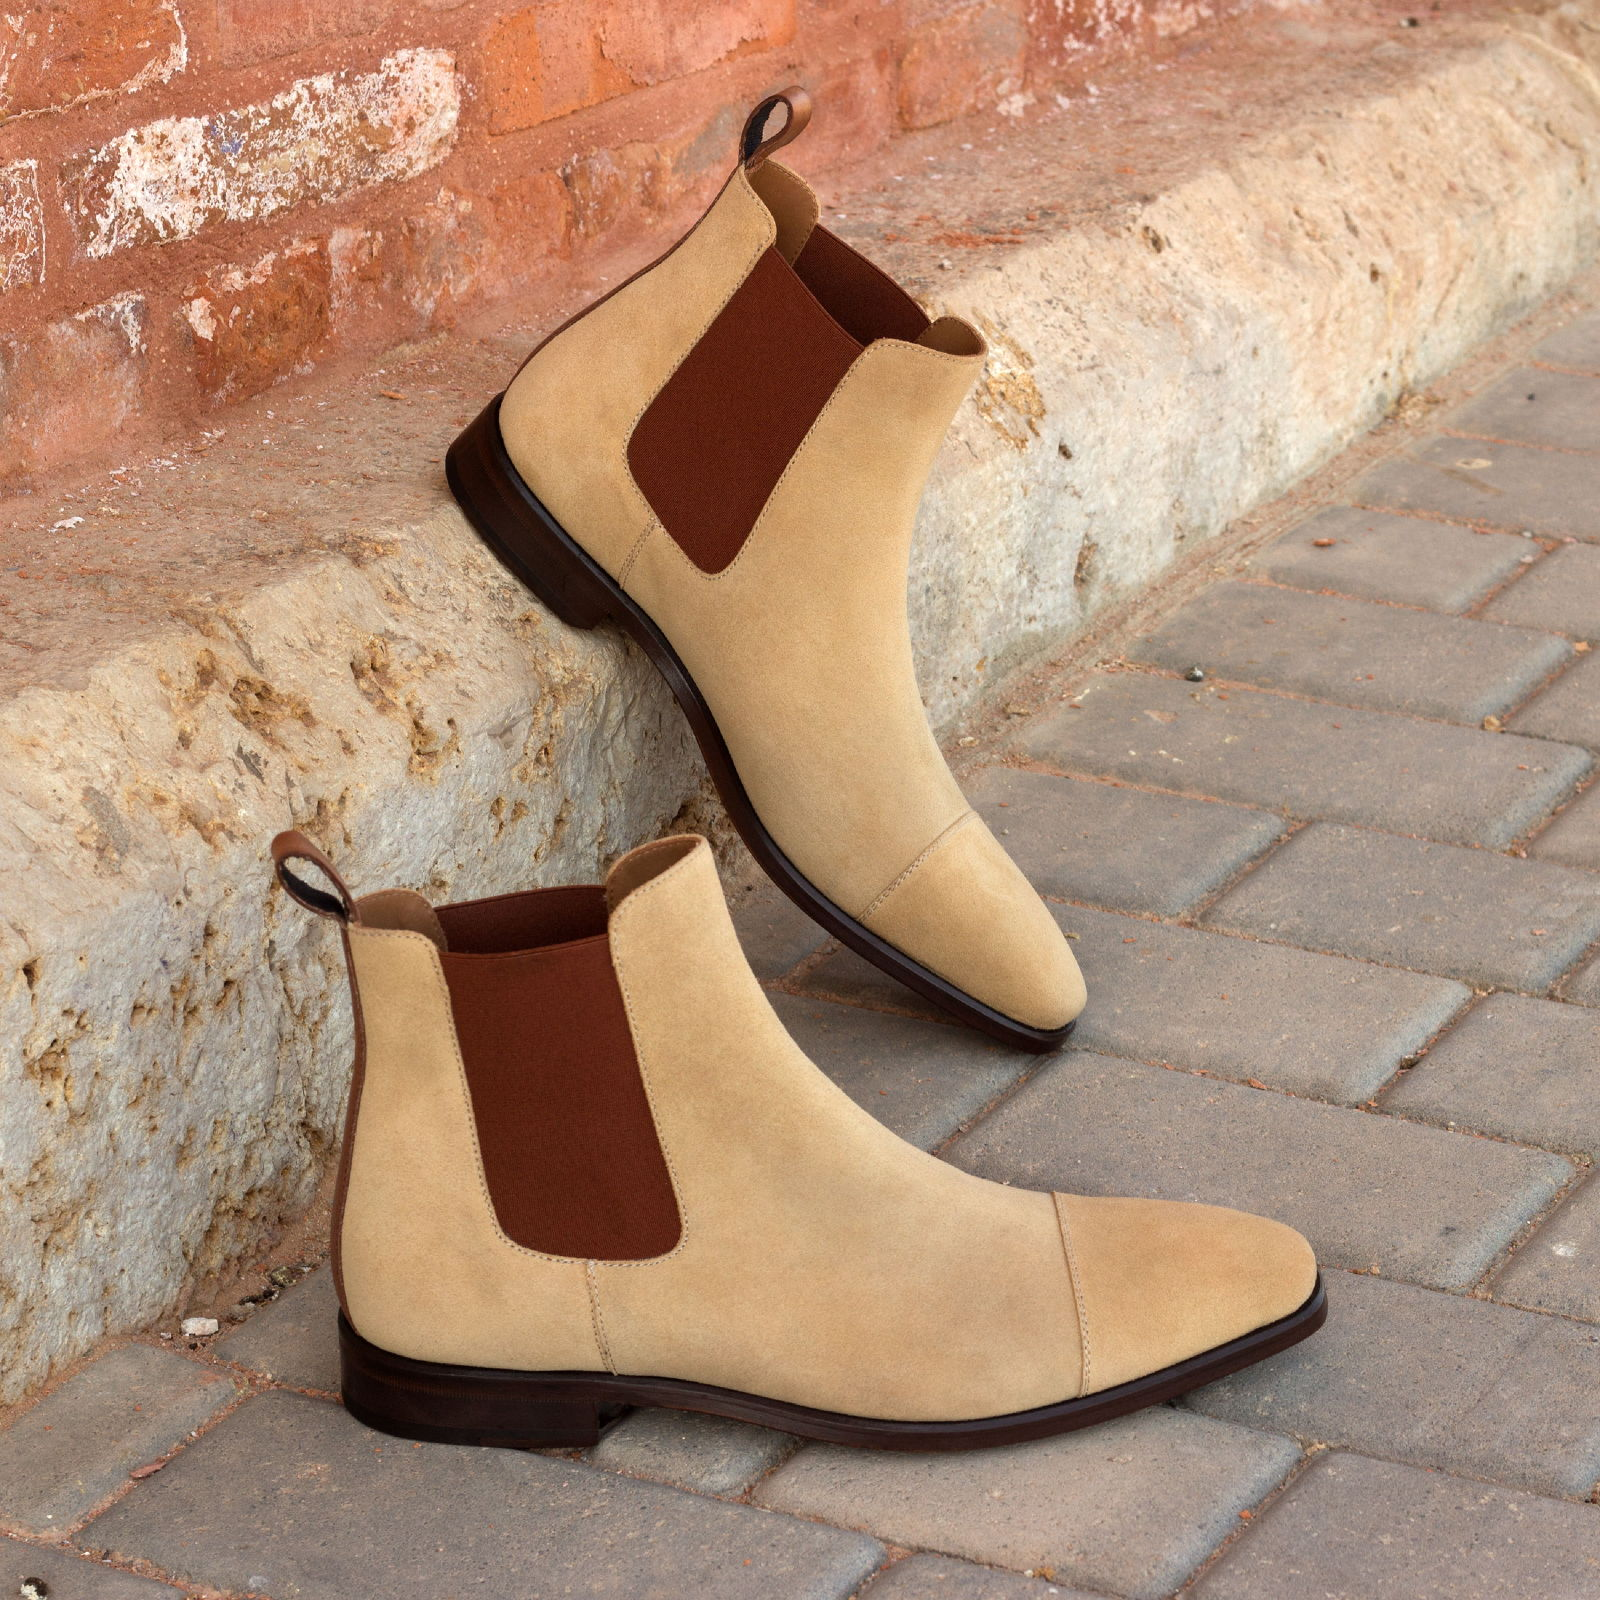 Chelsea boot  sand lux suede + med brown painted calf : 250€